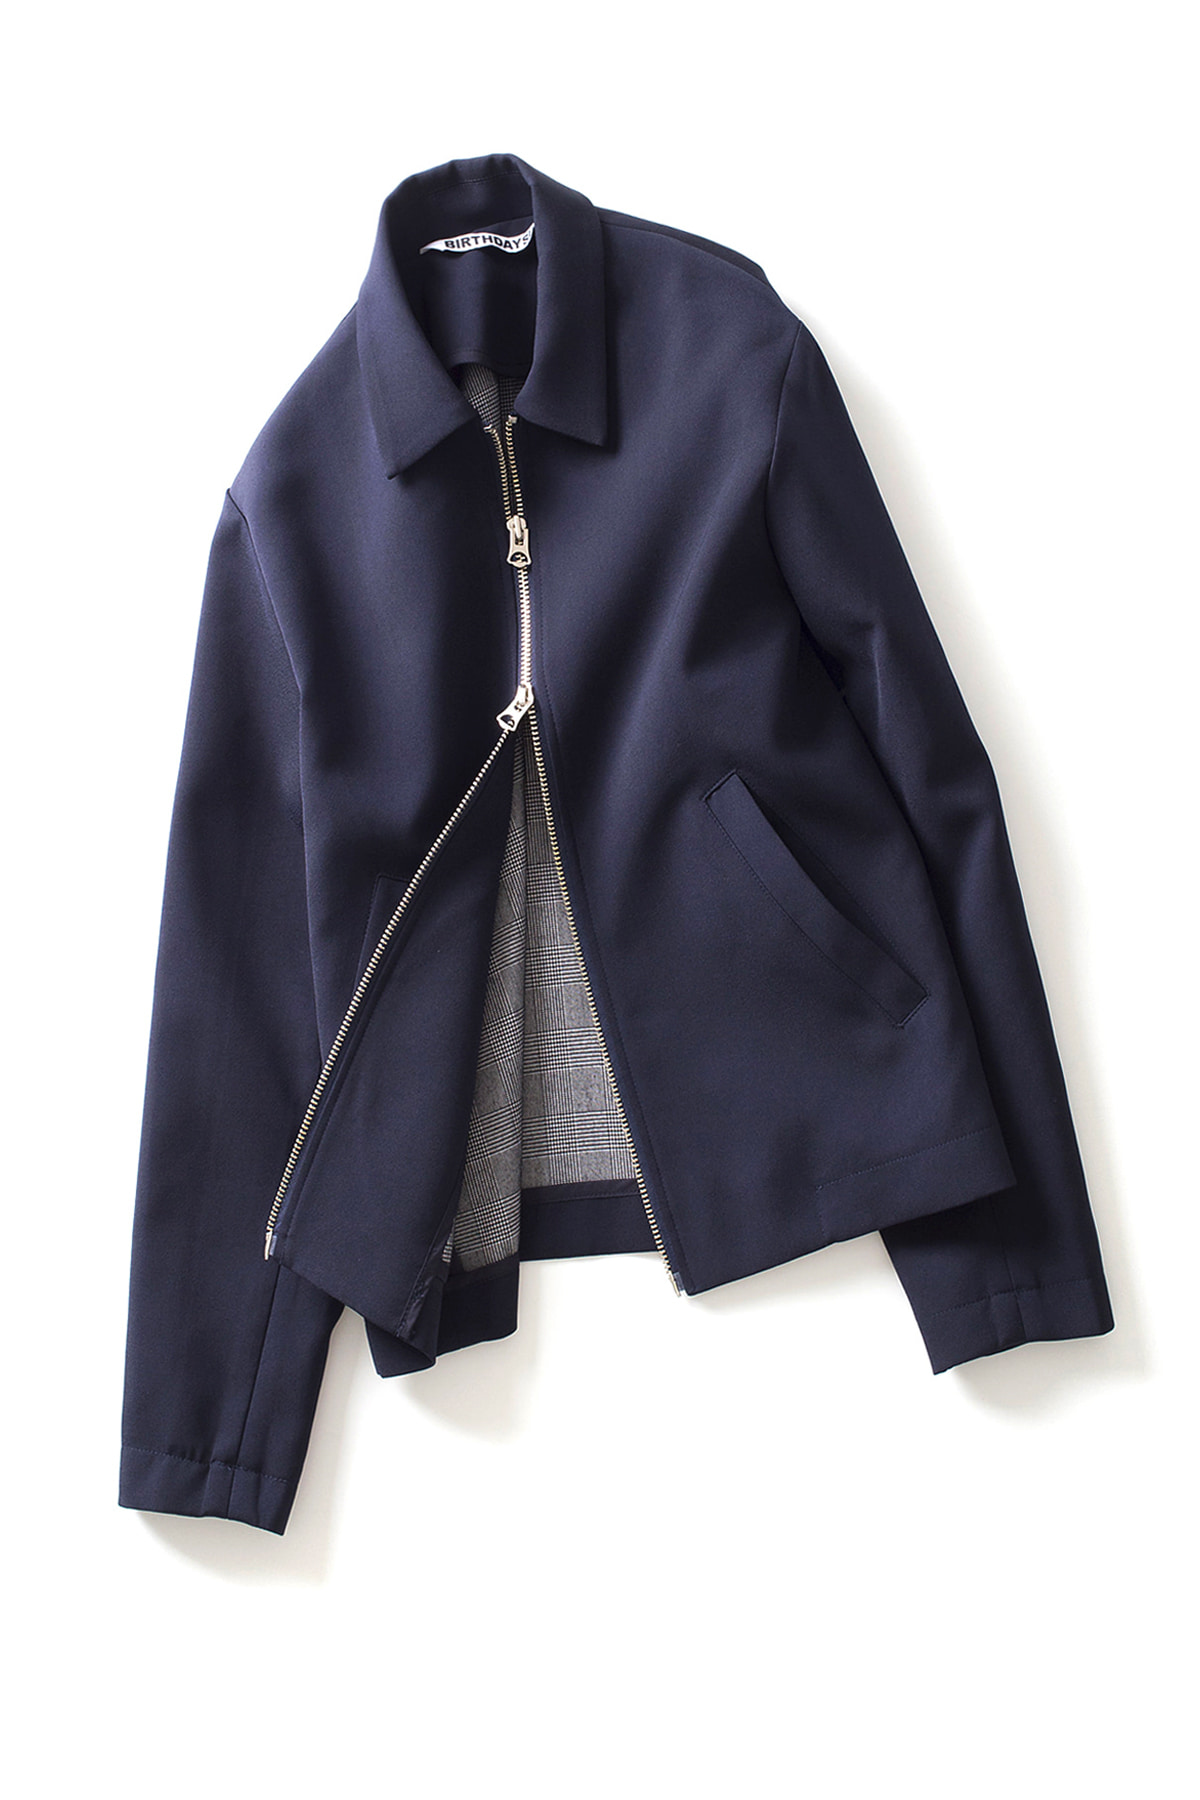 BIRTHDAYSUIT : 2-Way Blouson (Navy)